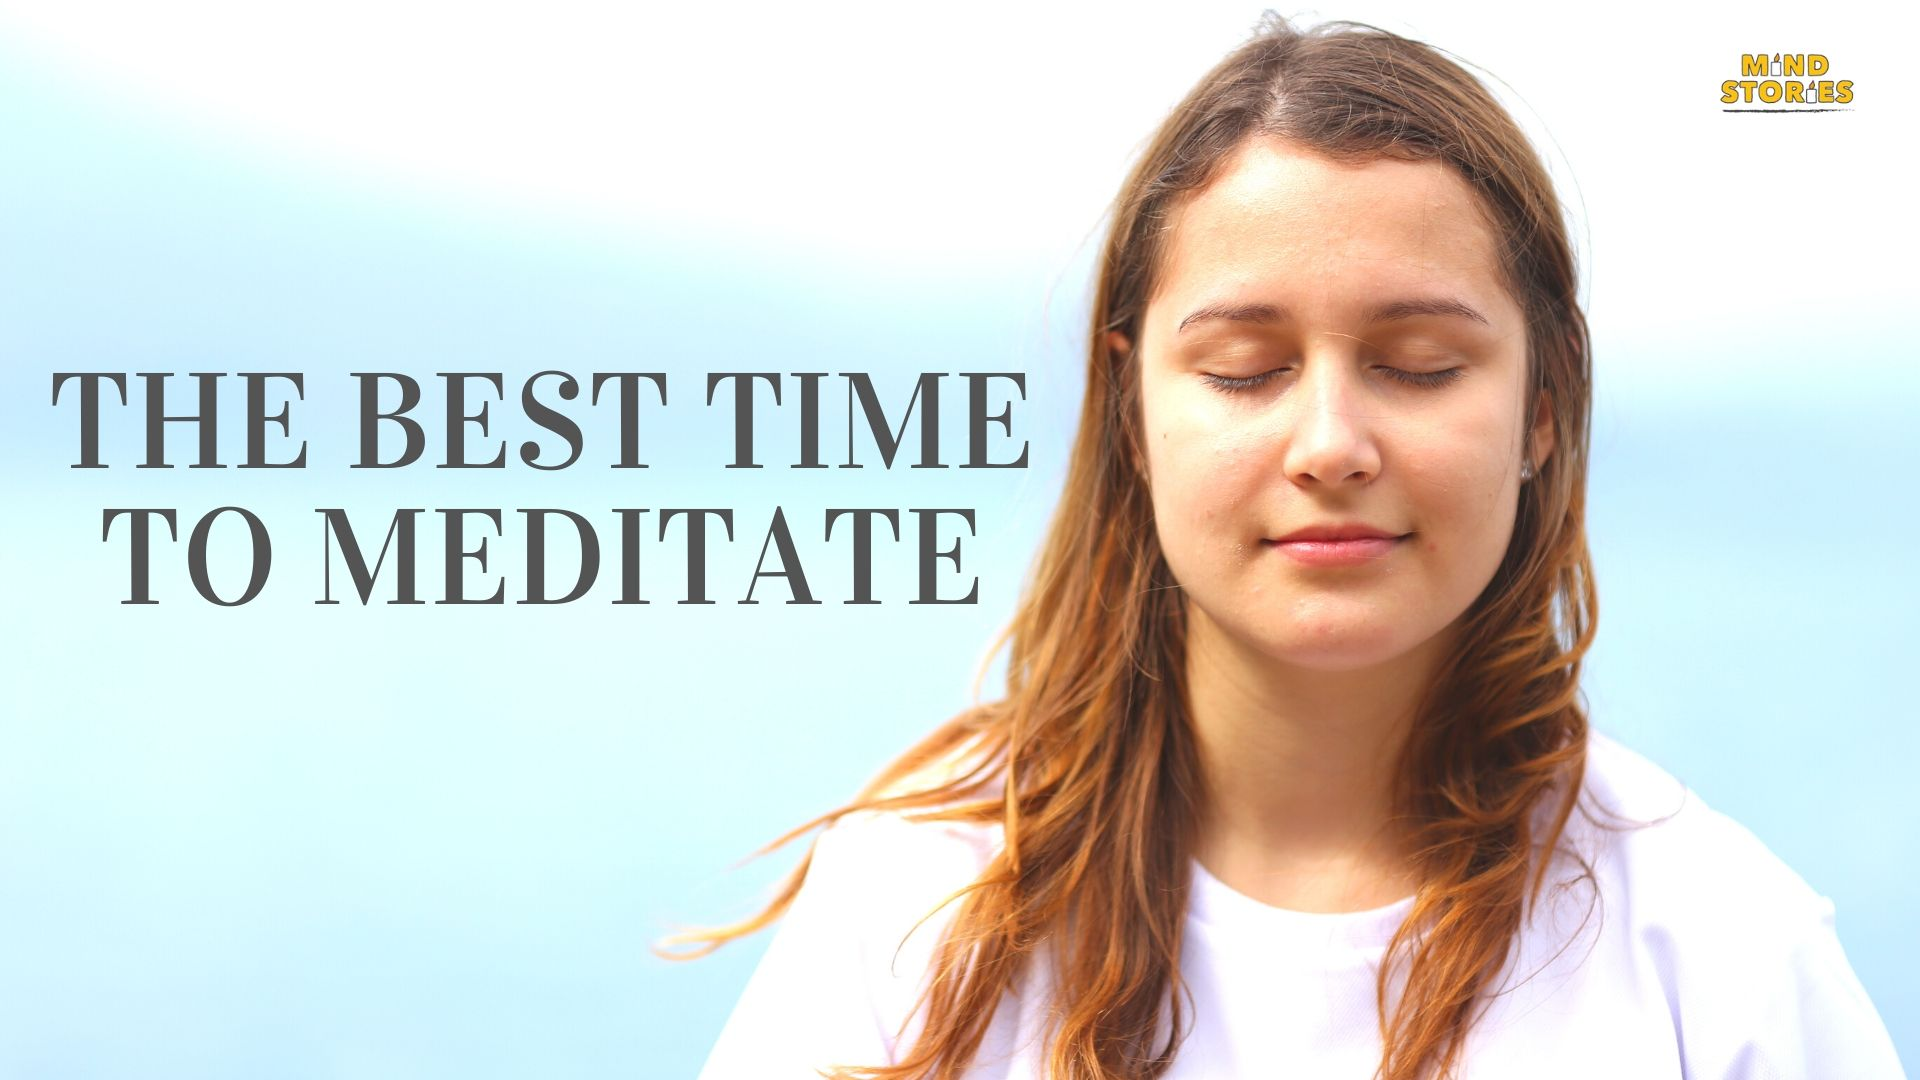 The best time to meditate